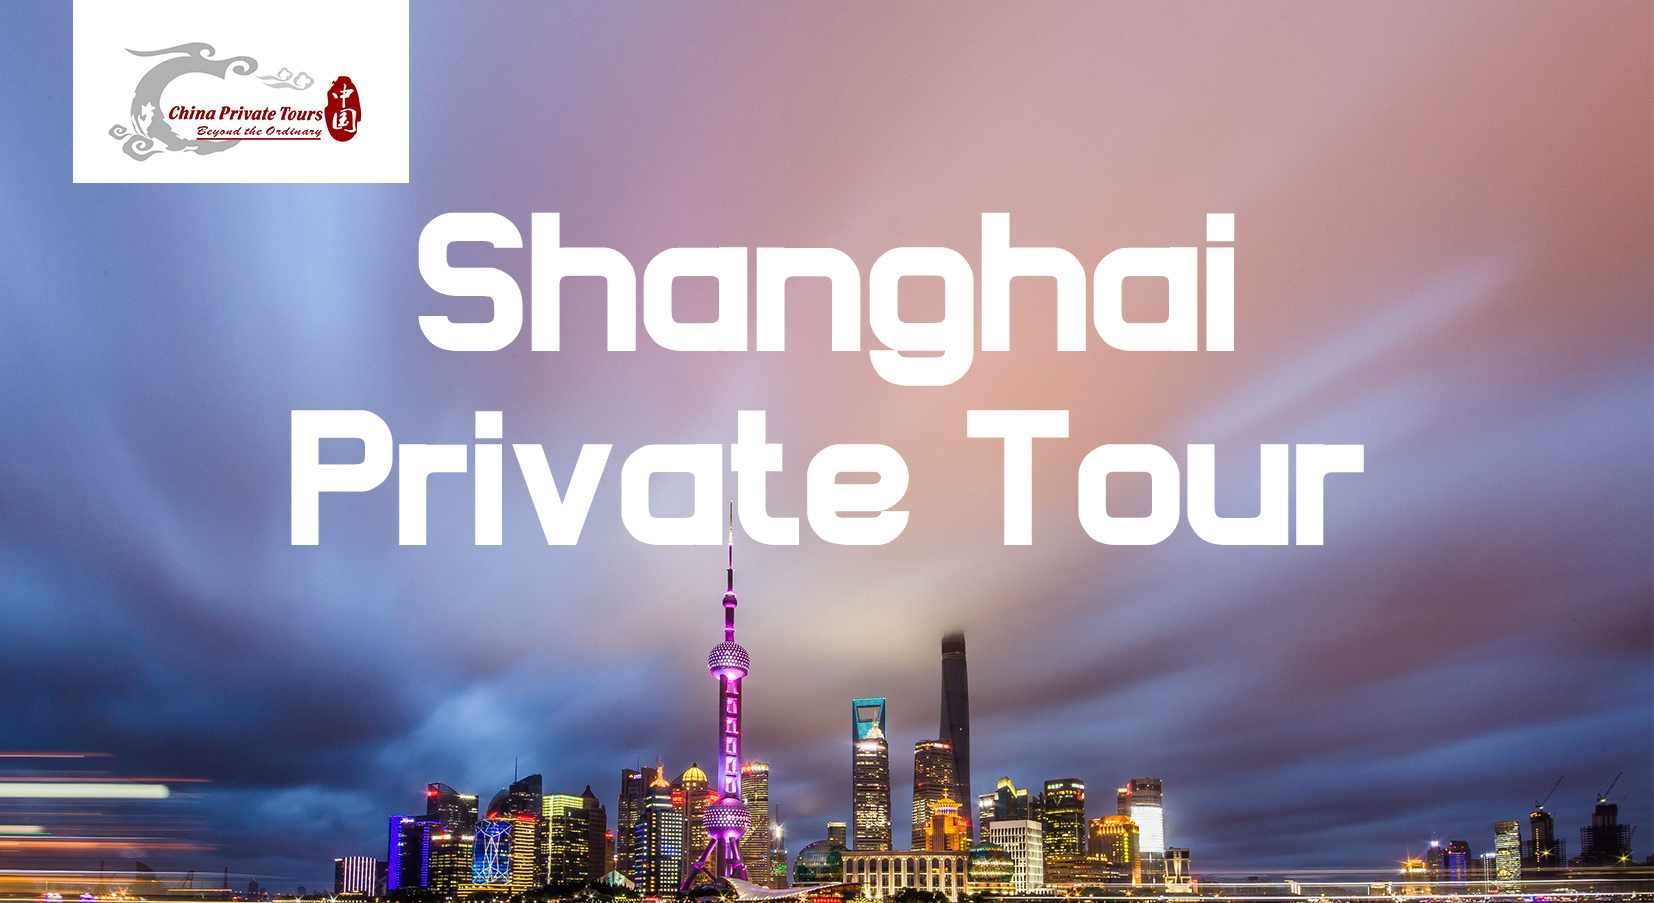 Shanghai private tour.JPG